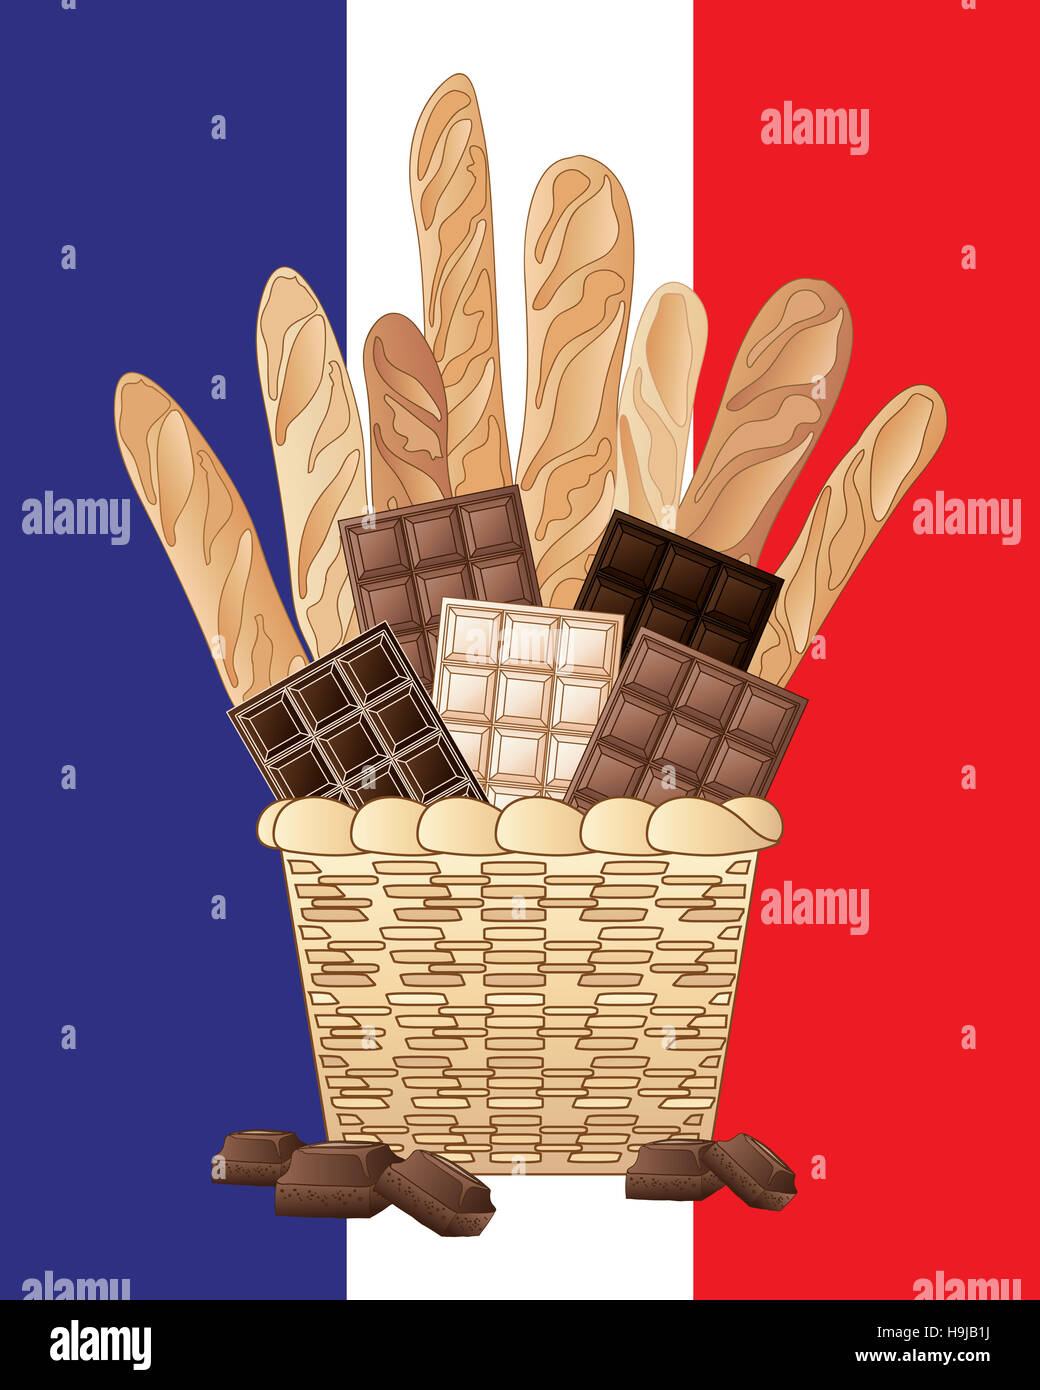 an illustration of a basket of long French loaves with bars of milk plain and white chocolate on a French flag background - Stock Image